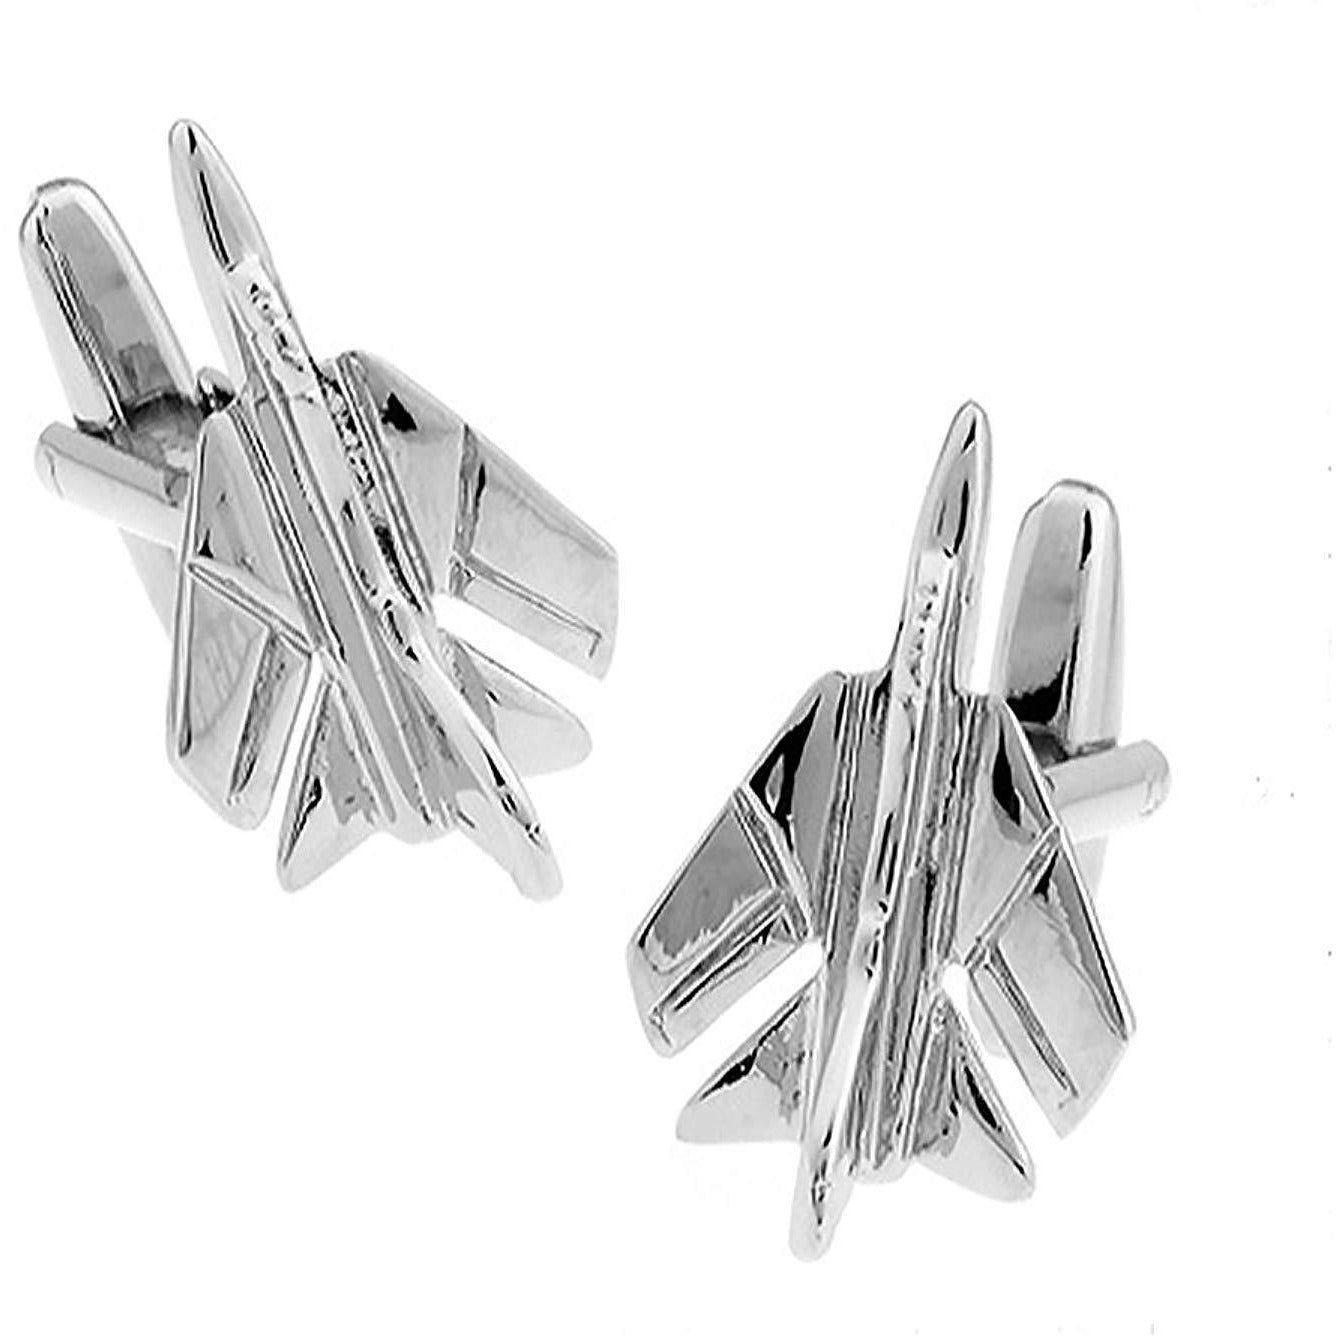 Silver Tornado Fighter Jet Aeroplane Cufflinks